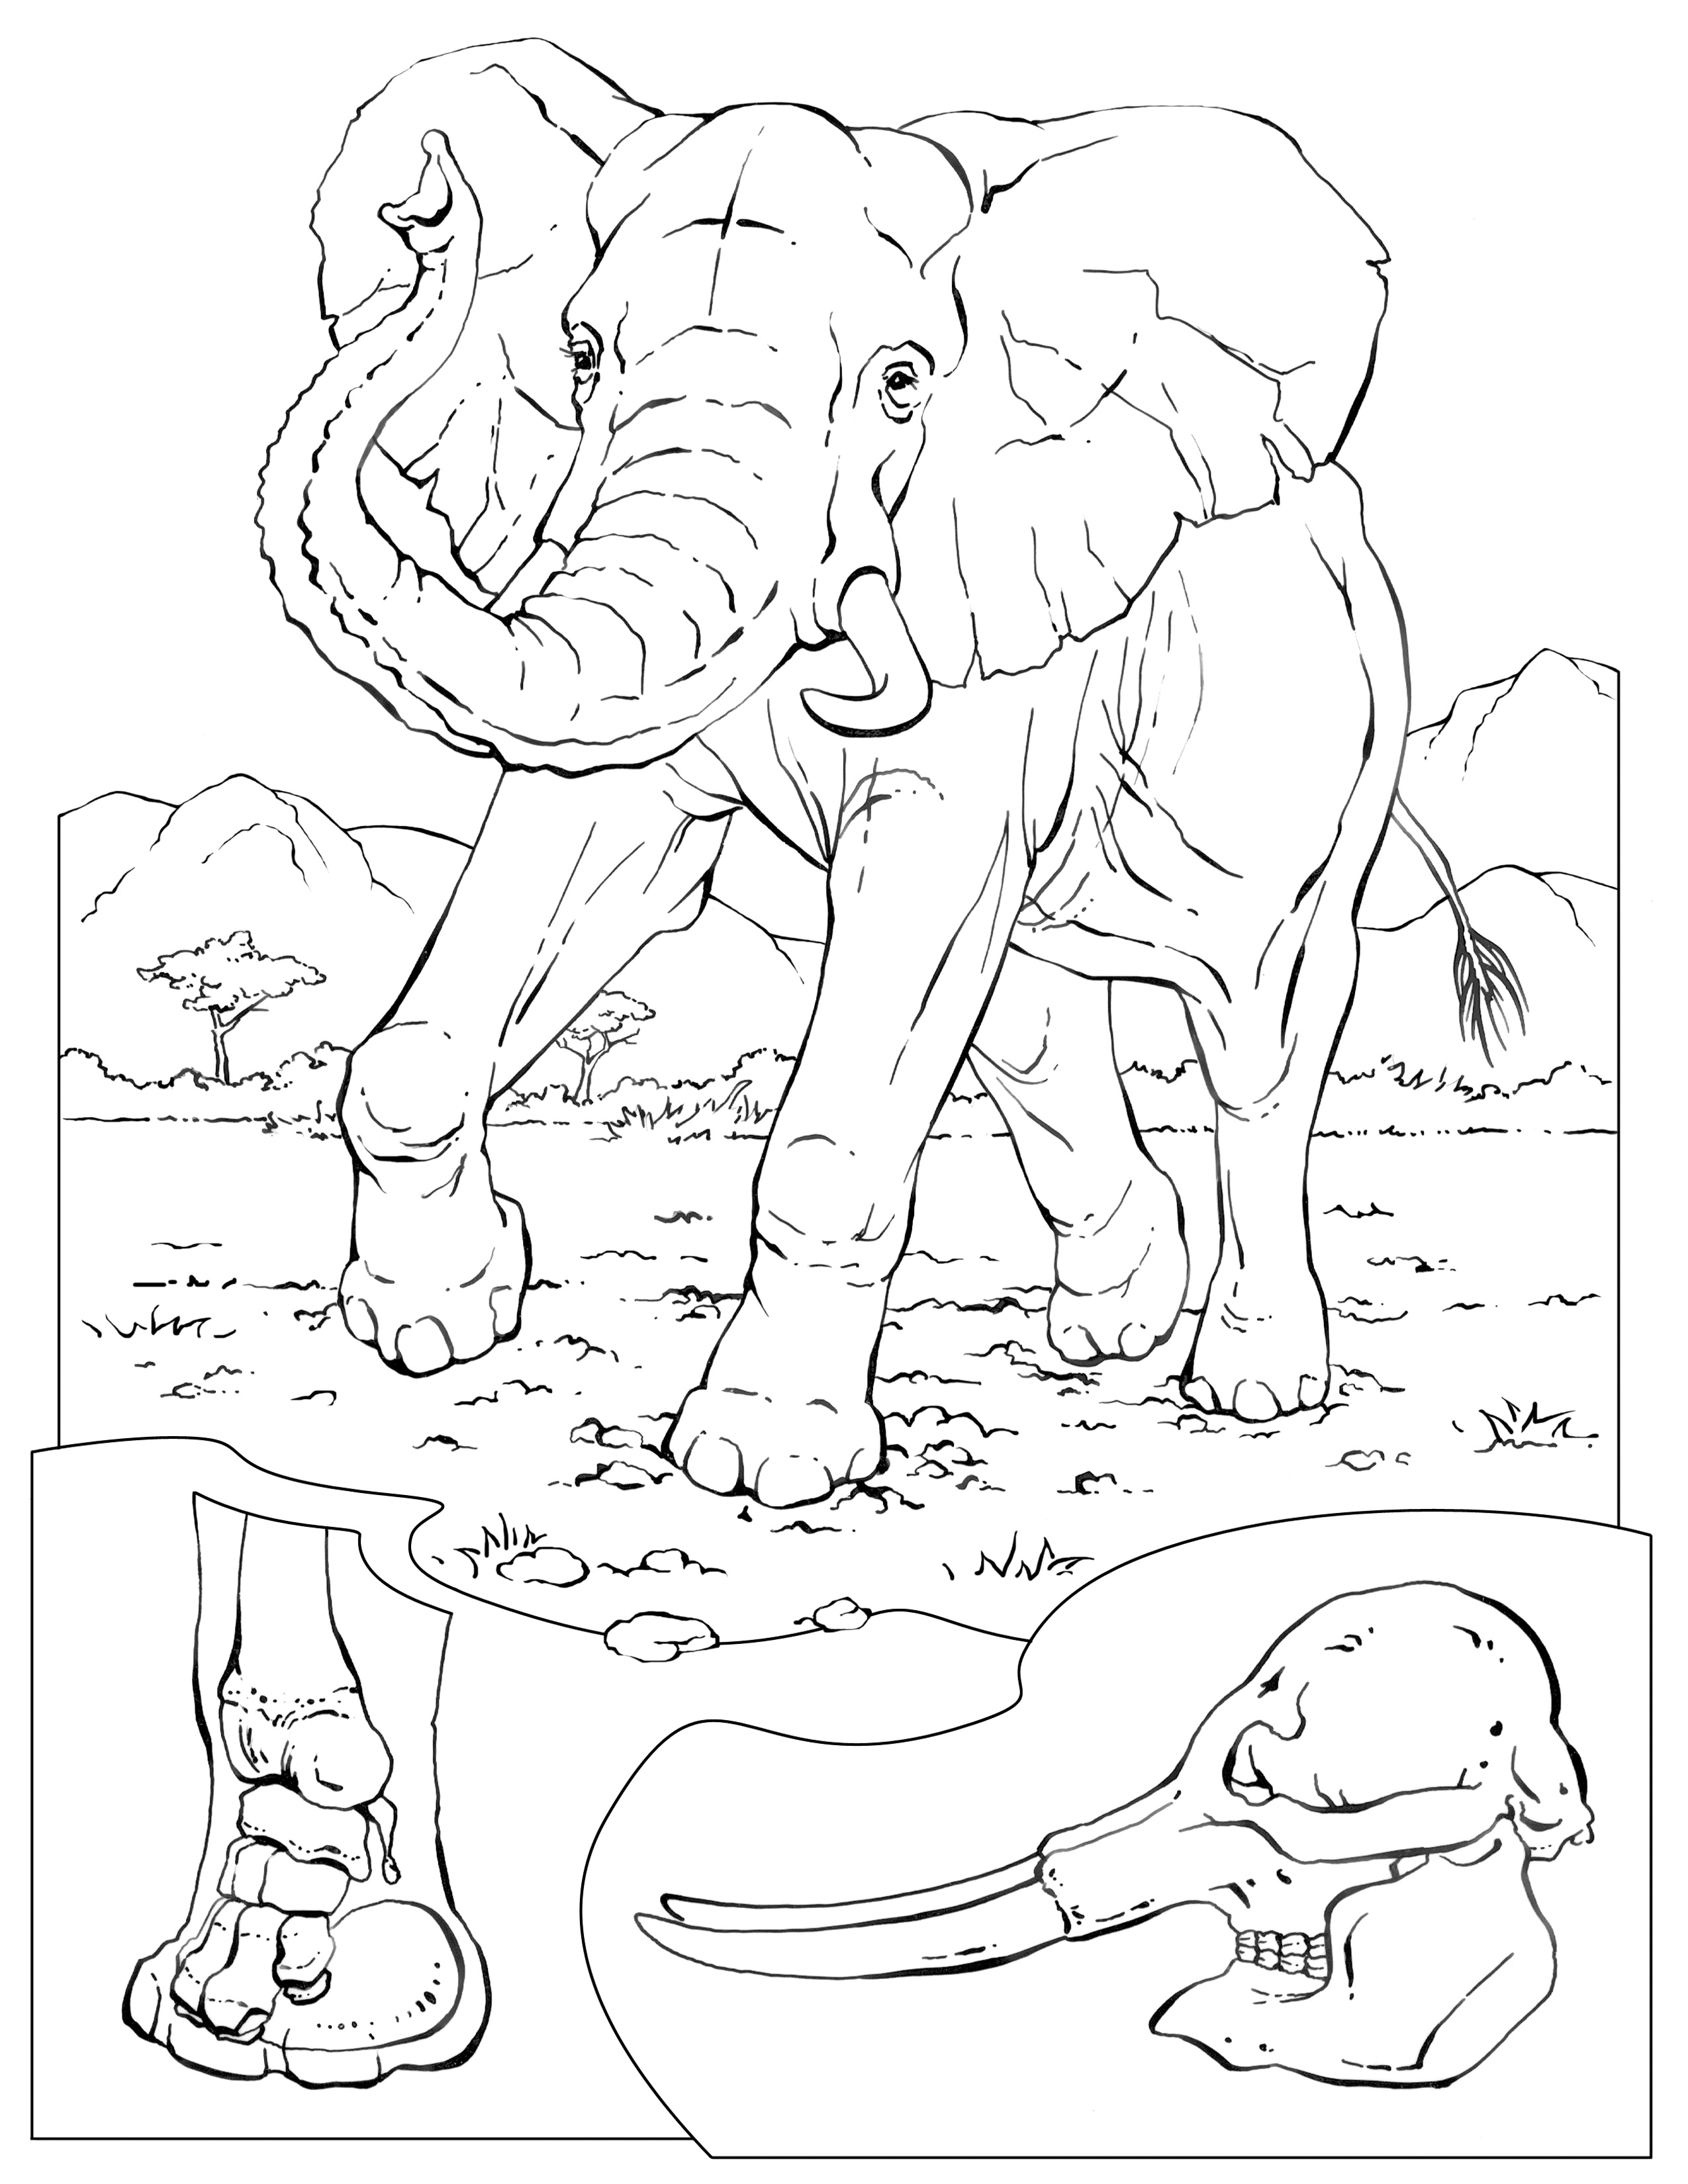 animal habitat coloring animal habitat coloring pages google search 1st grade art habitat animal coloring